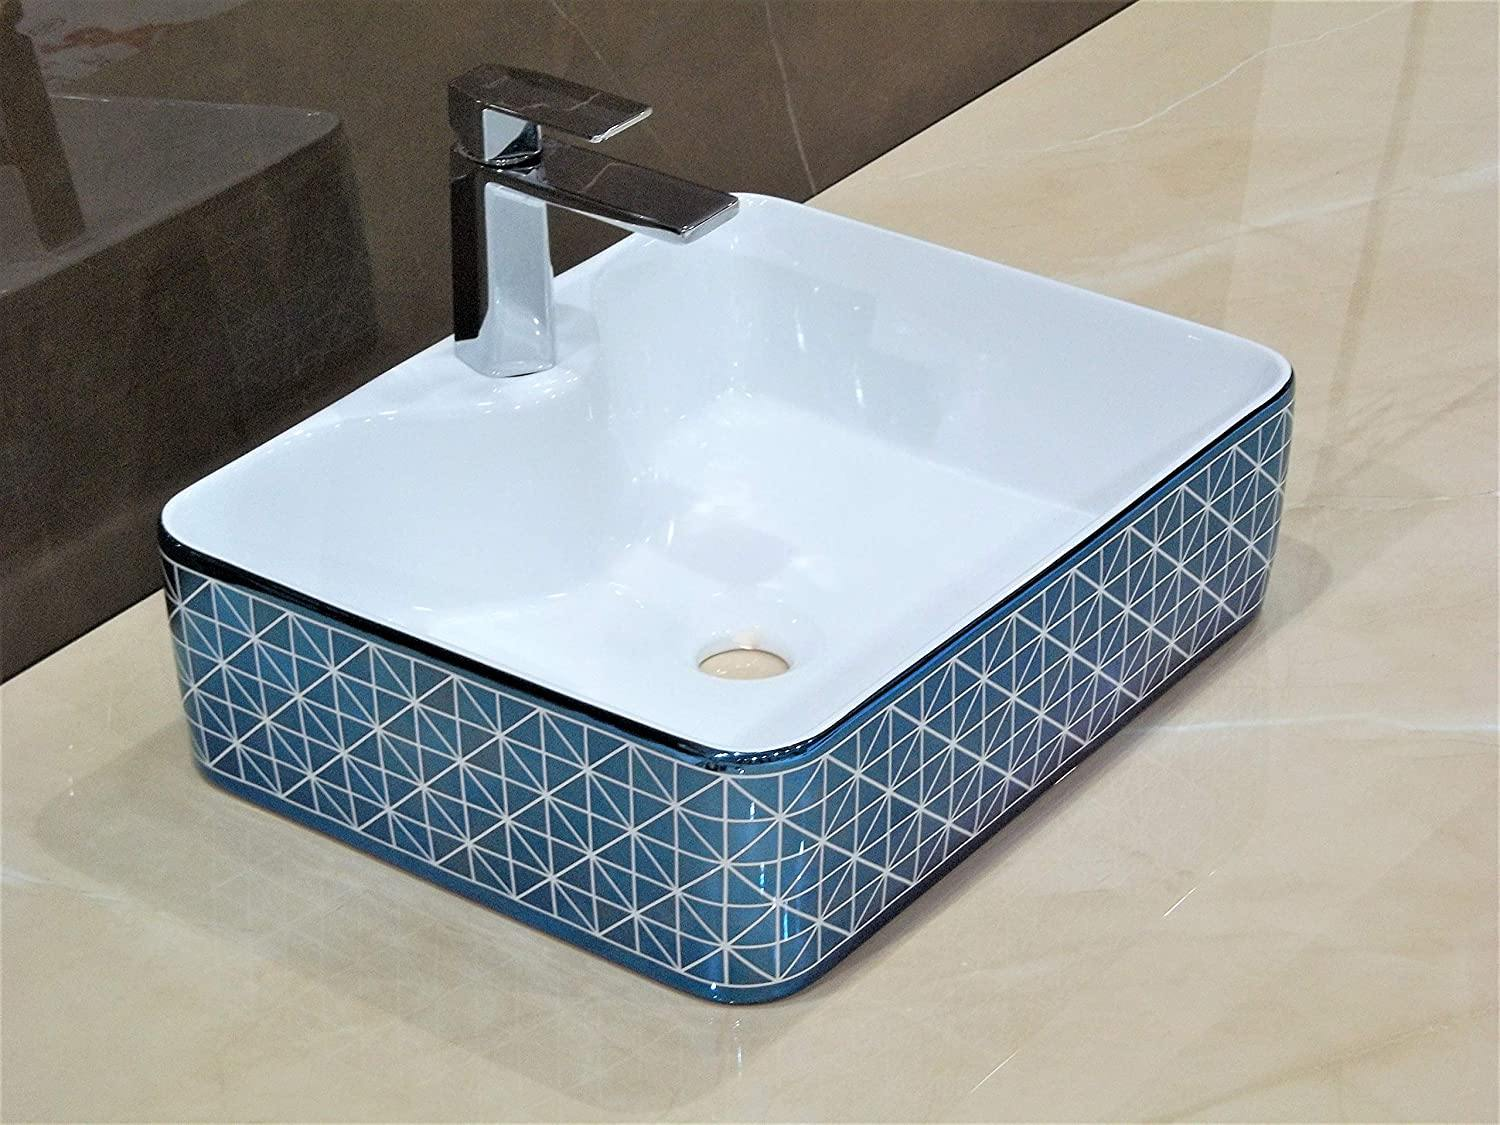 Lavatory Above Counter Ceramic Bathroom Vessel Sink Art Wash Basin Rectangle shape in Glossy Finish White Blue Color 48 x 37 x 13.5 CM - Home Store Cart